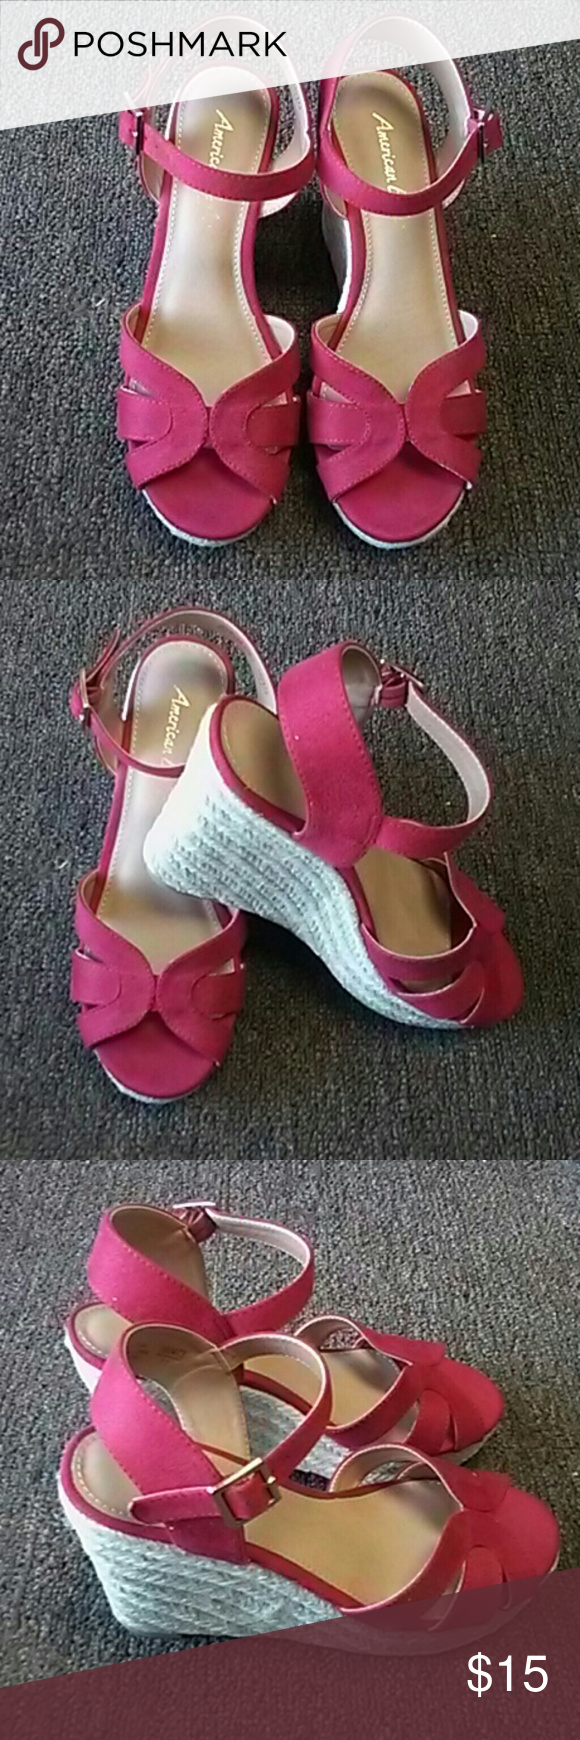 fe9fd211416d Red wedges Beautiful casual red shoes American Eagle By Payless Shoes  Sandals